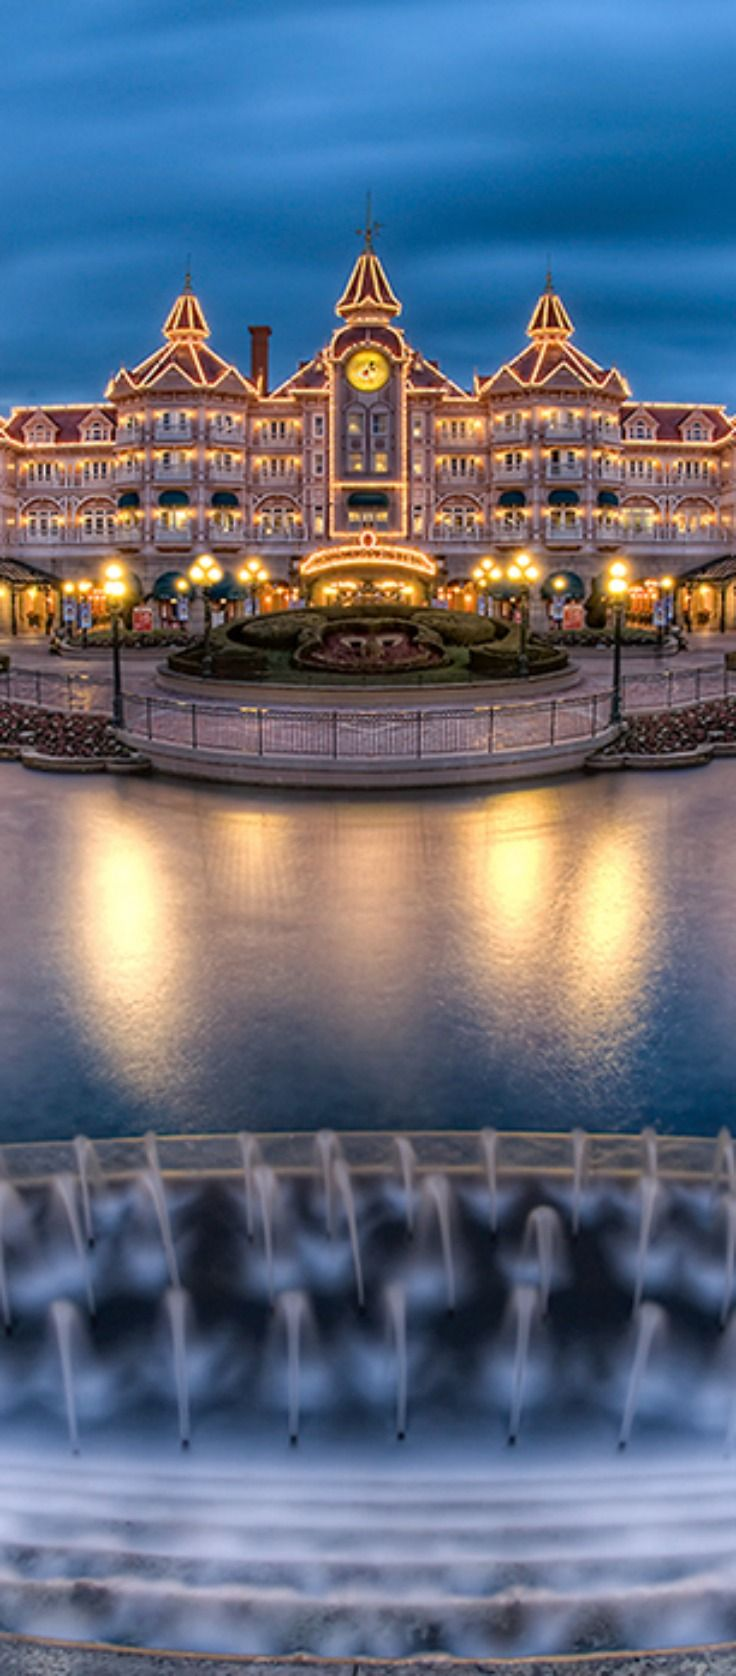 Disneyland PARIS, EuroDisney, France - me and my bestie are planning a trip here this year yayyy ! Xox